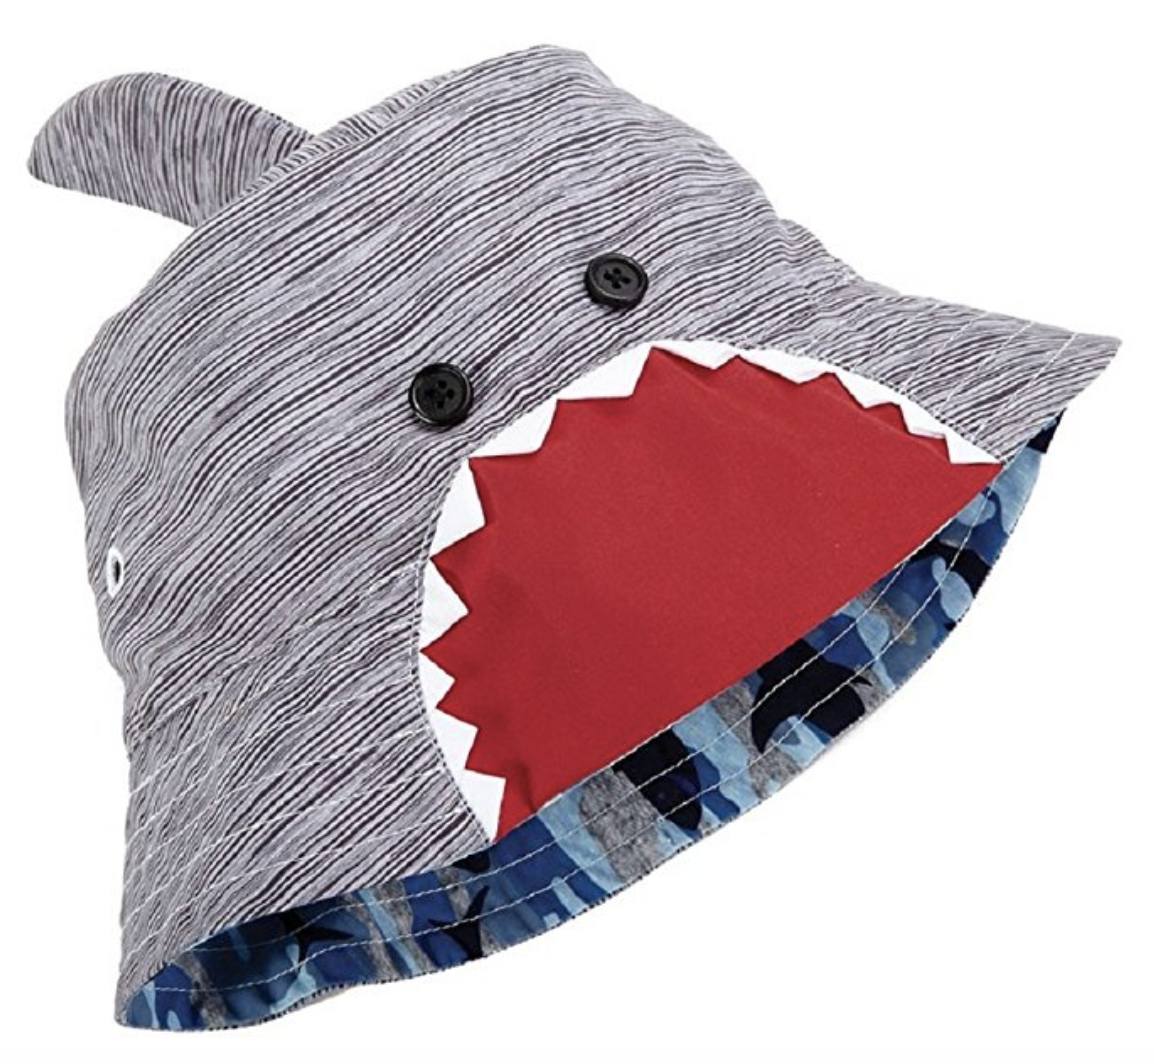 This shark hat is $18 on  Amazon